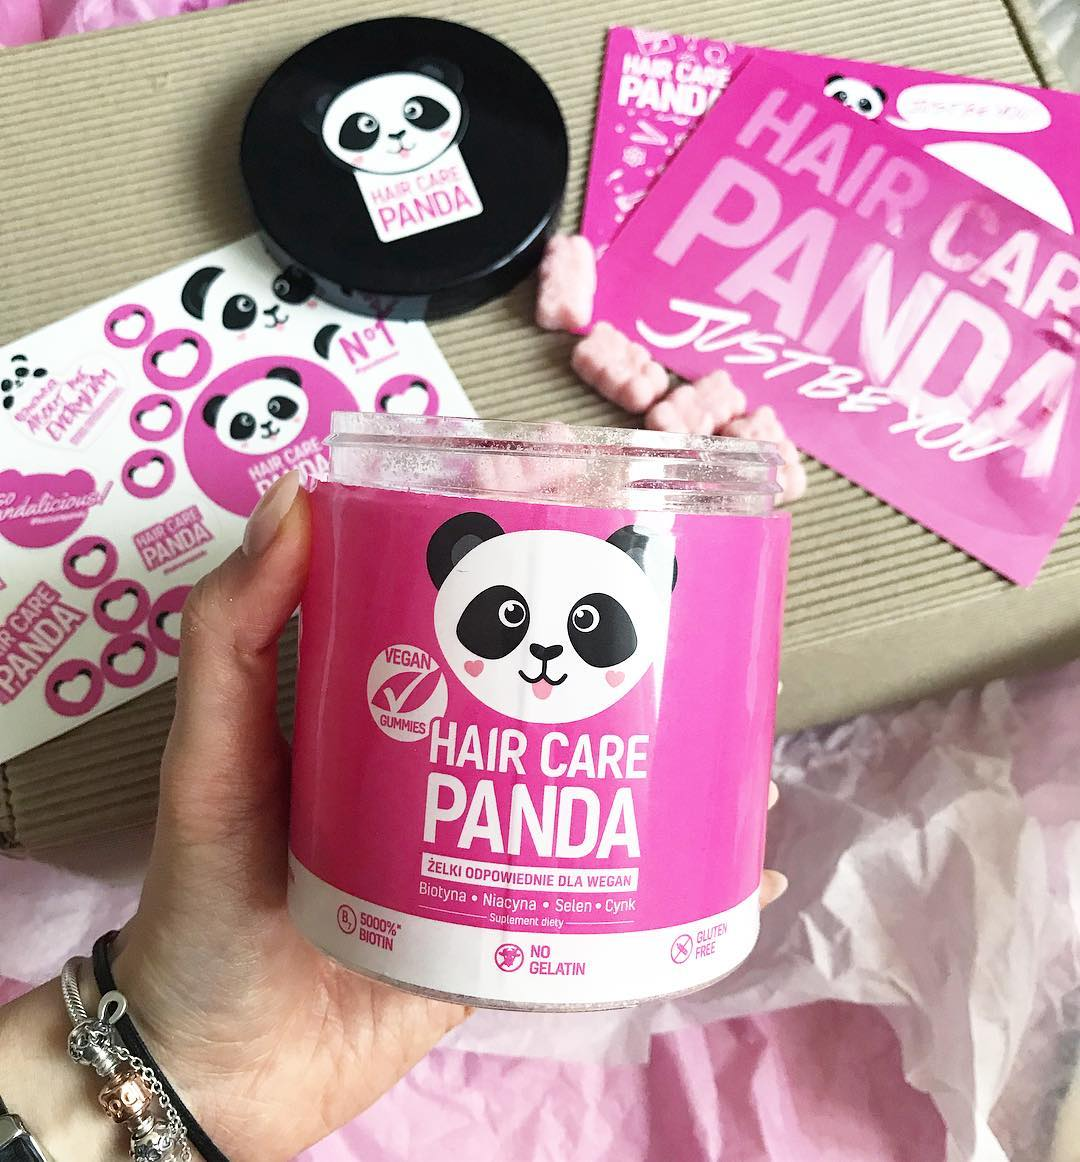 Hair Care Panda  – precio – dónde comprar – mercadona – Amazon aliexpress – vende en farmacias - farmacia - en mercadona